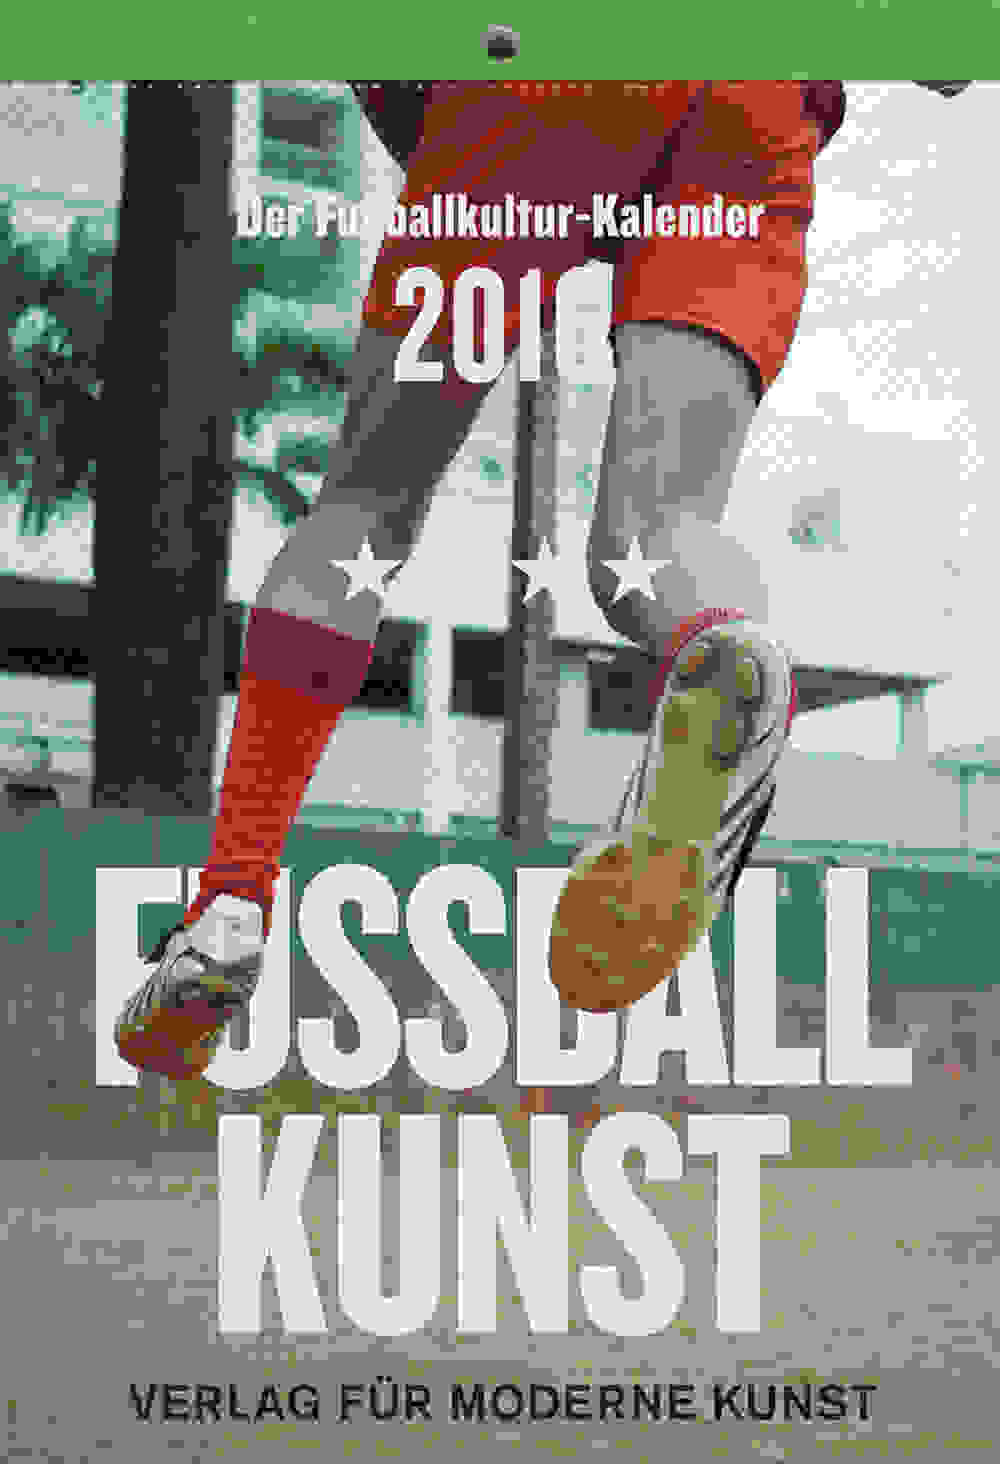 RB Fussball Kunst 2016 slider 1